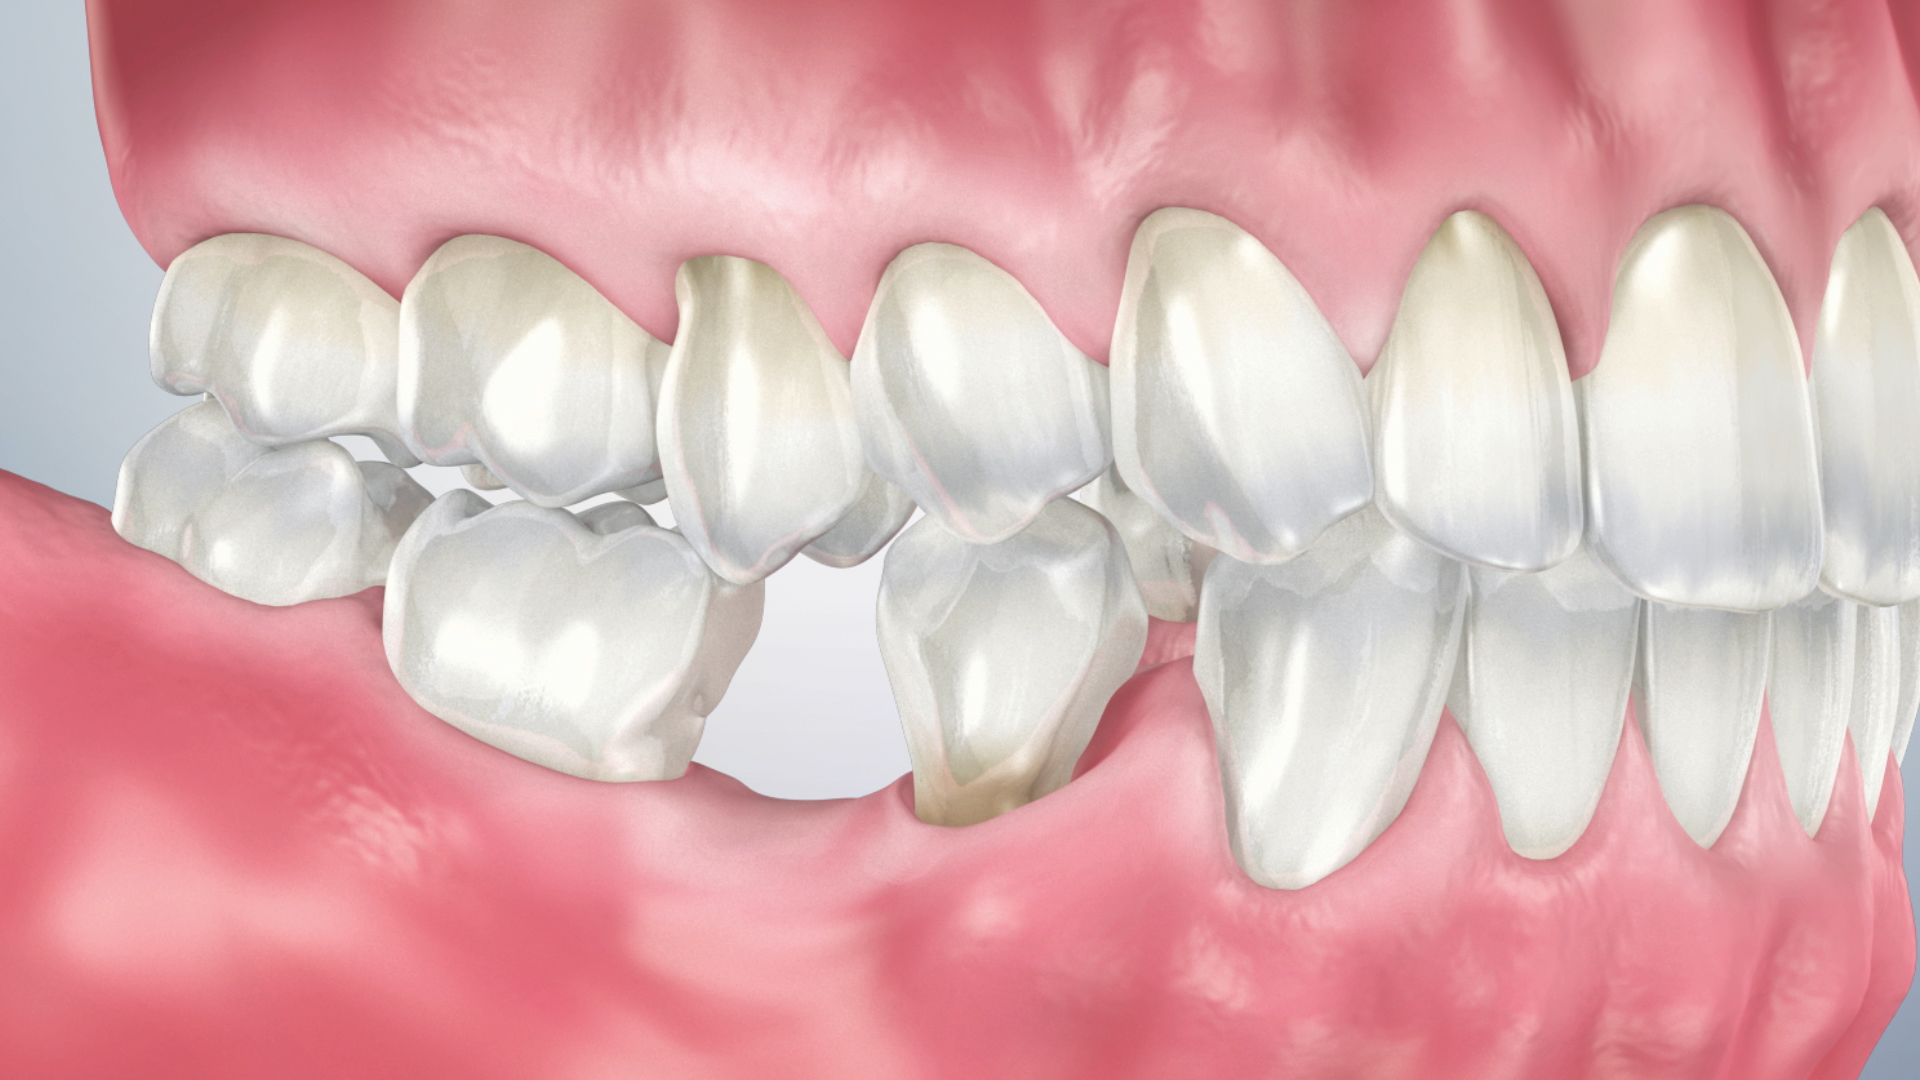 Thumbnail for a video on Single Tooth Loss